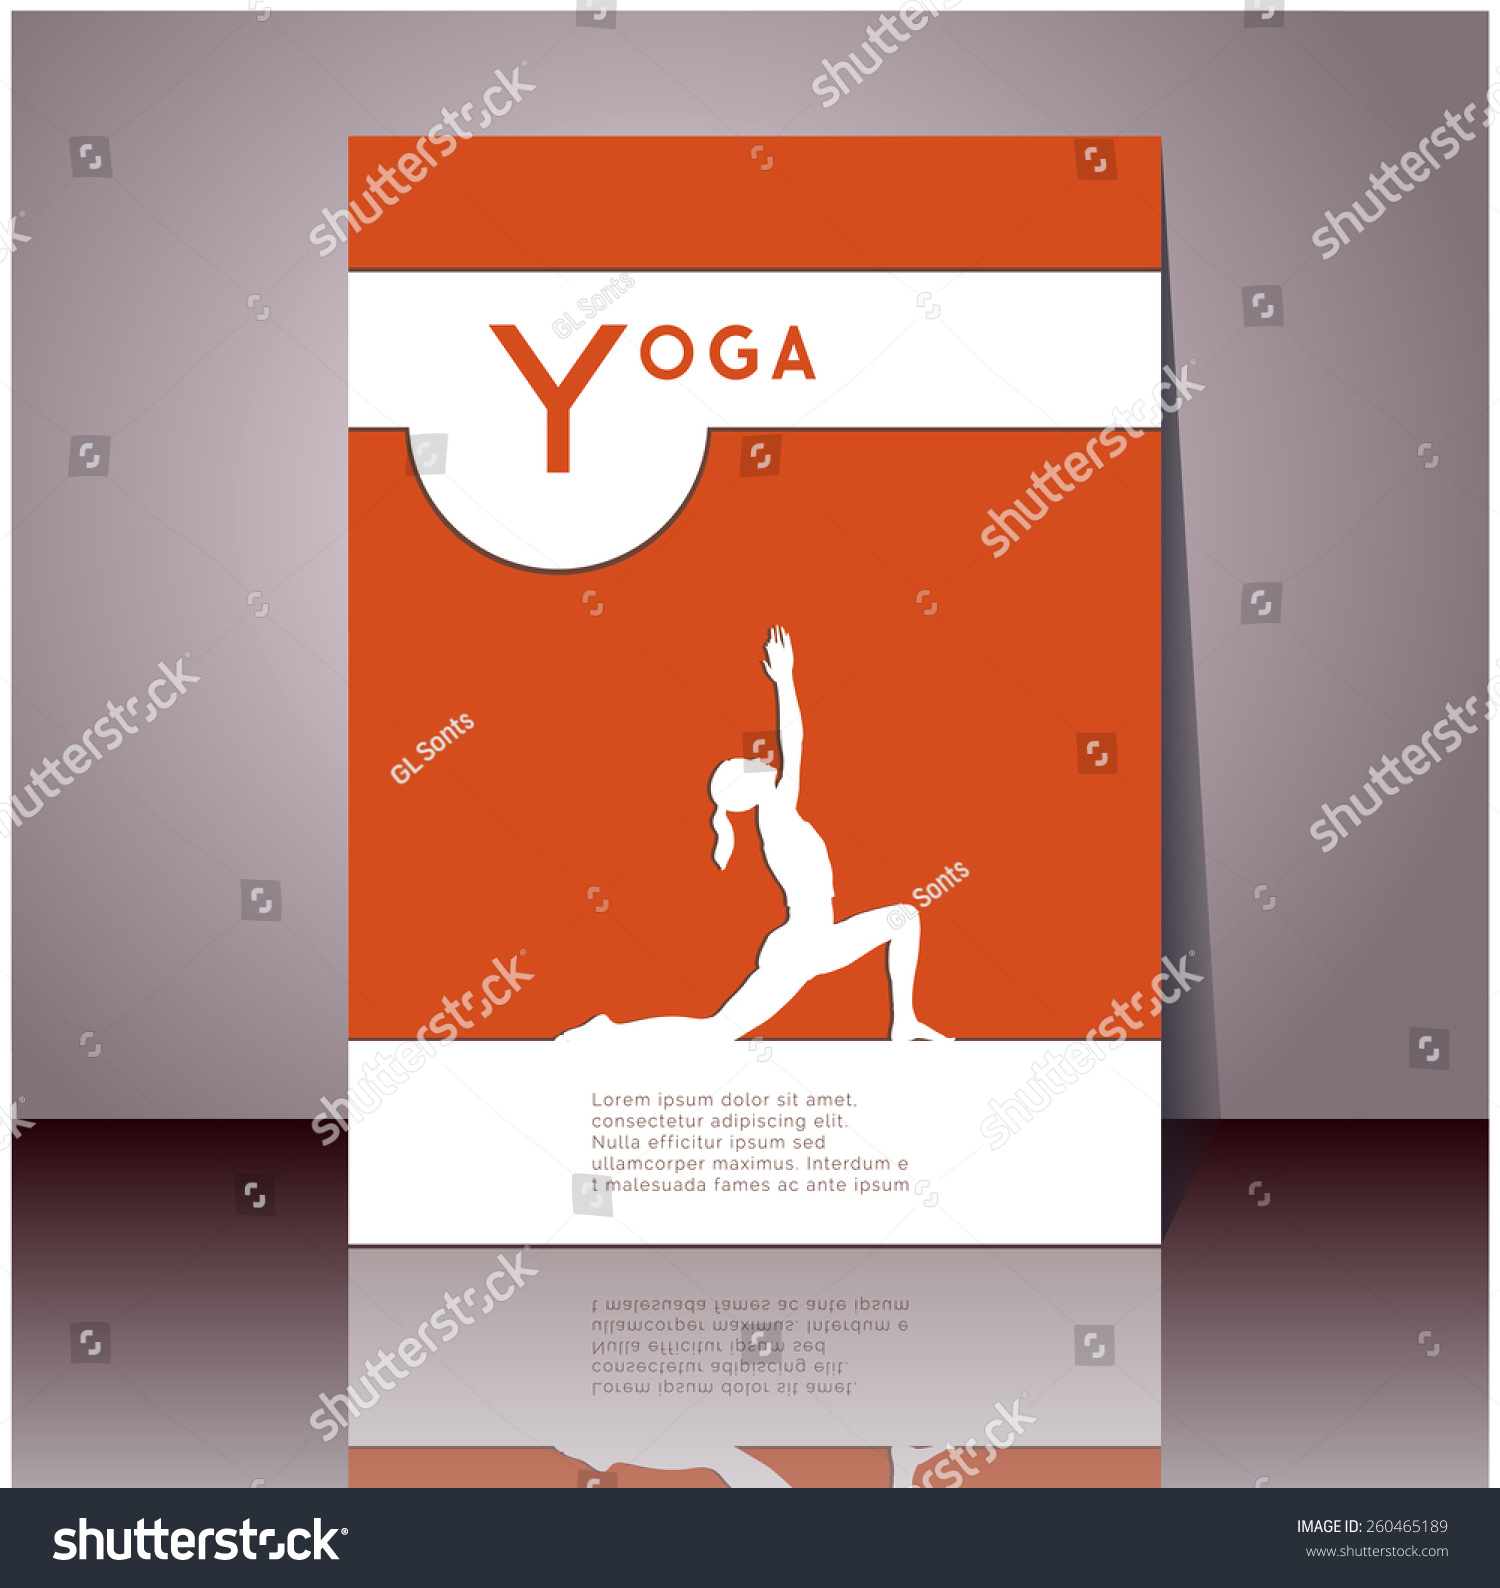 yoga vector poster professional flyer template stock vector professional flyer template or booklet design for yoga studio for publishing